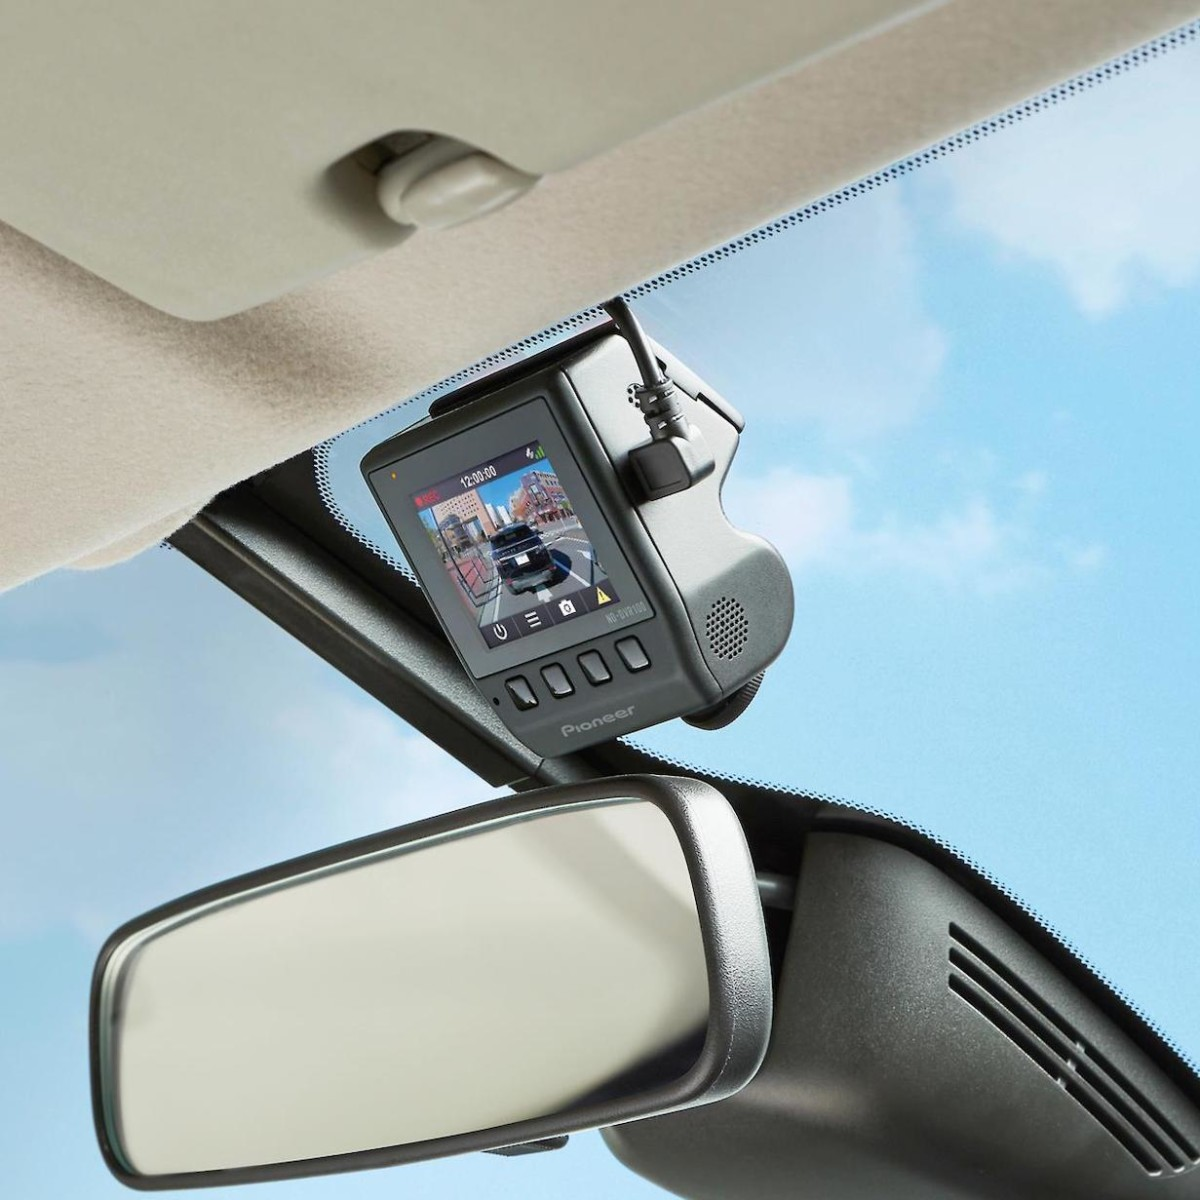 Pioneer ND-DVR100 Small Dashcam mounts discreetly in your vehicle